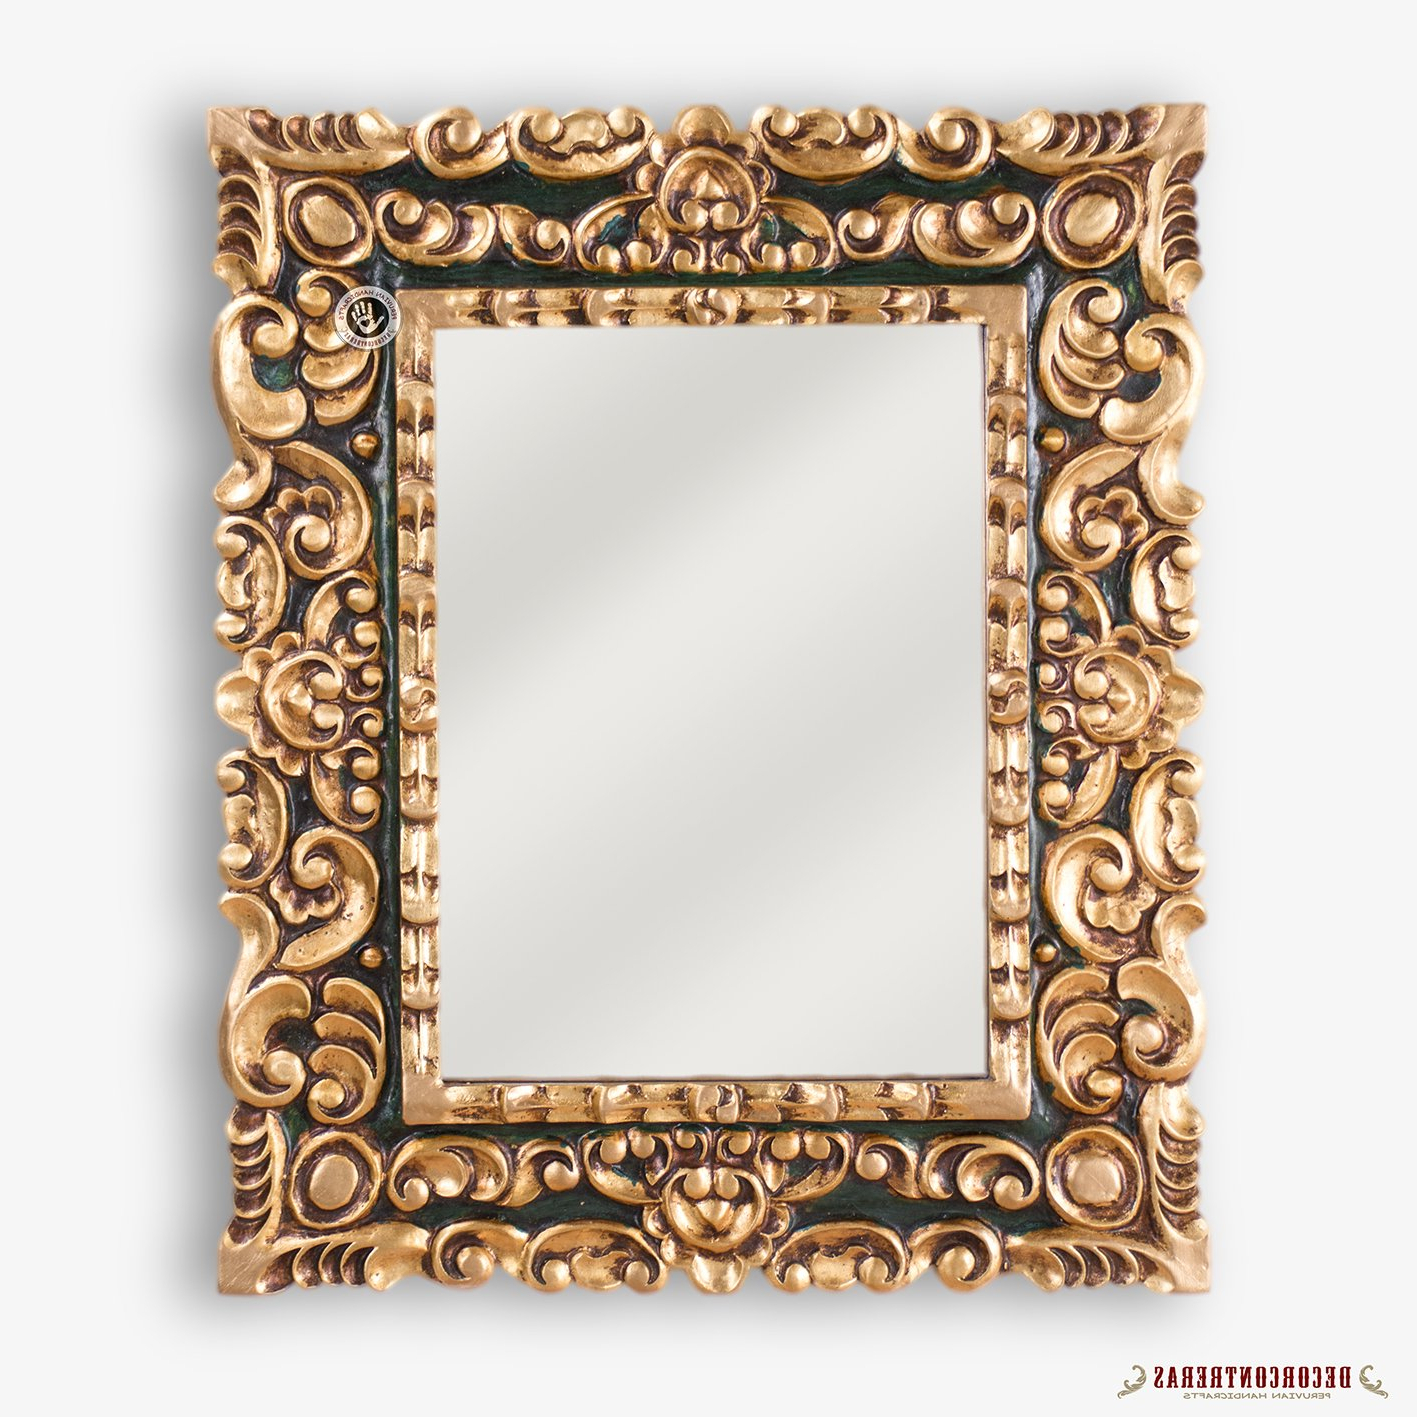 Most Recent Amazon: Rectangle Wood Framed Accent Mirror, Bathroom Decorative Throughout Rectangle Accent Mirrors (View 8 of 20)